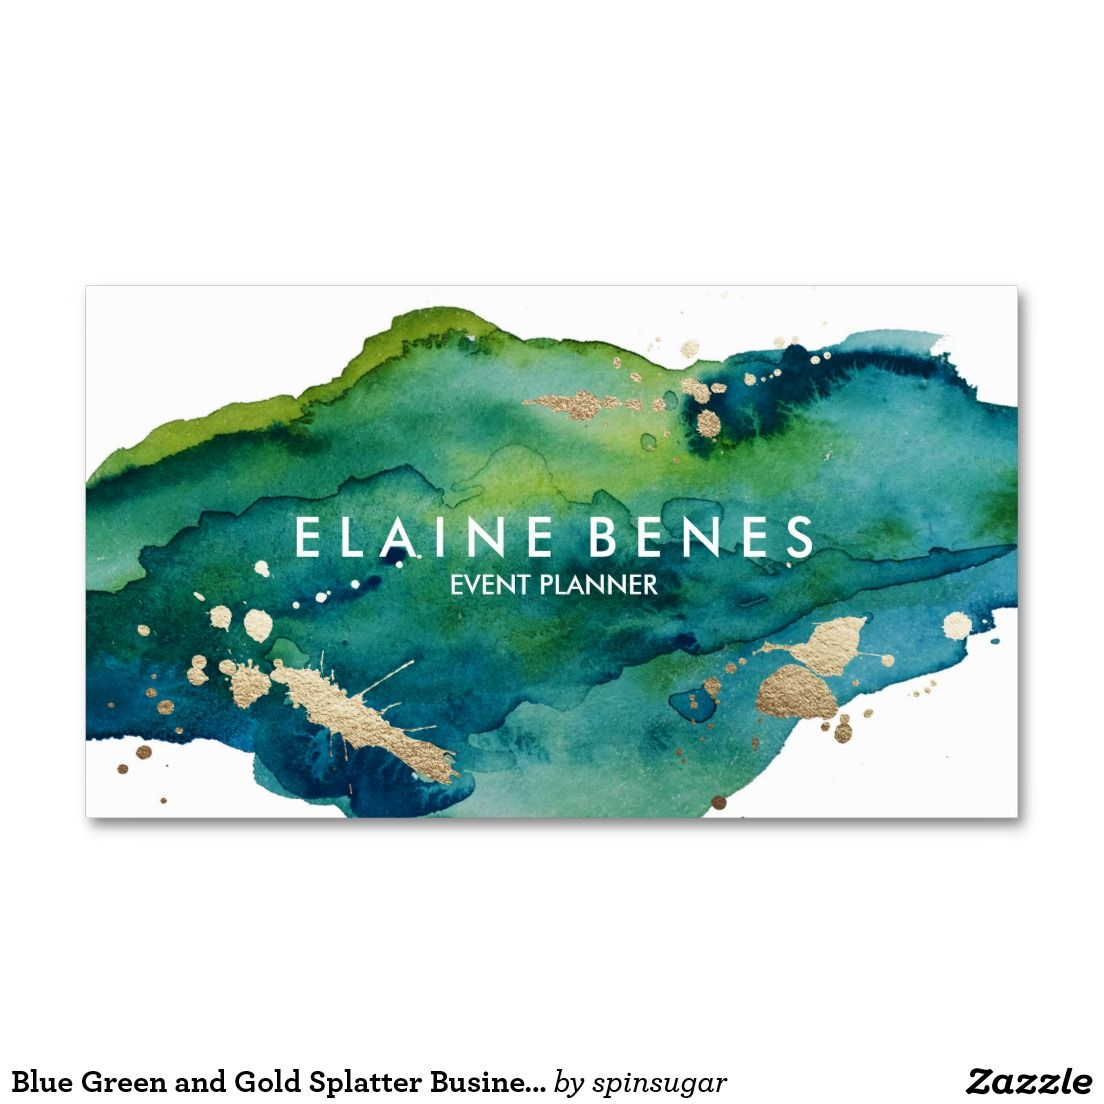 Blue green and gold splatter business card blue green business blue green and gold splatter business card reheart Images